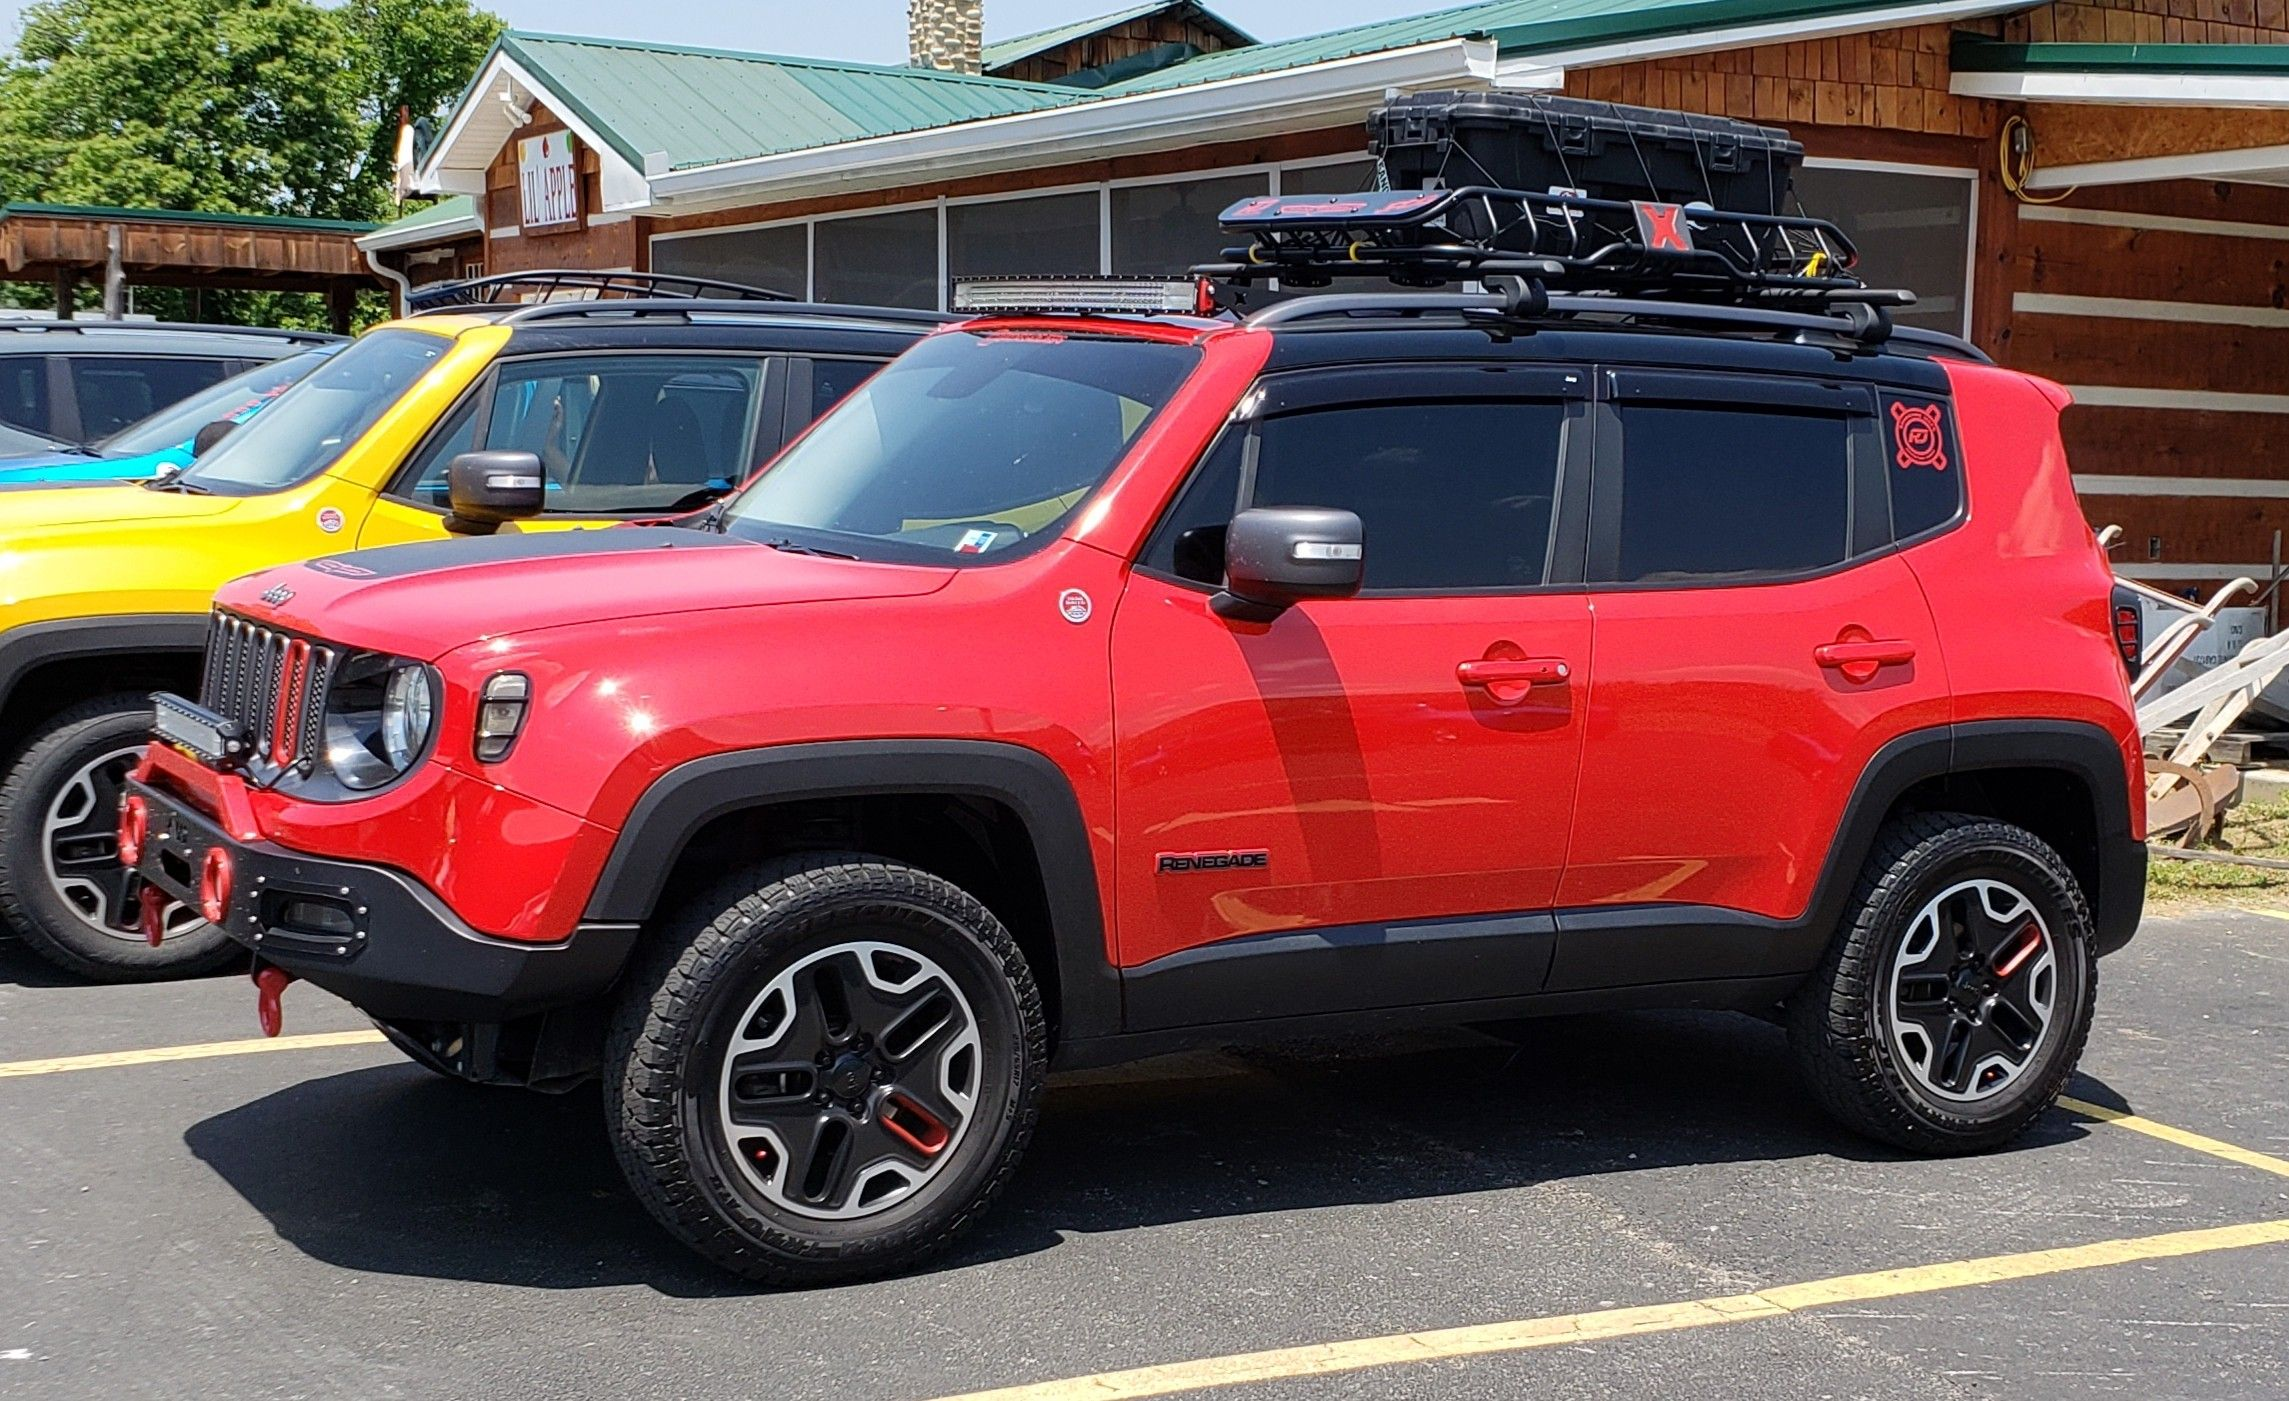 Pin By Riaan Geldenhuys On Jeep All Jeep Jeep Renegade Jeep Sweet Ride